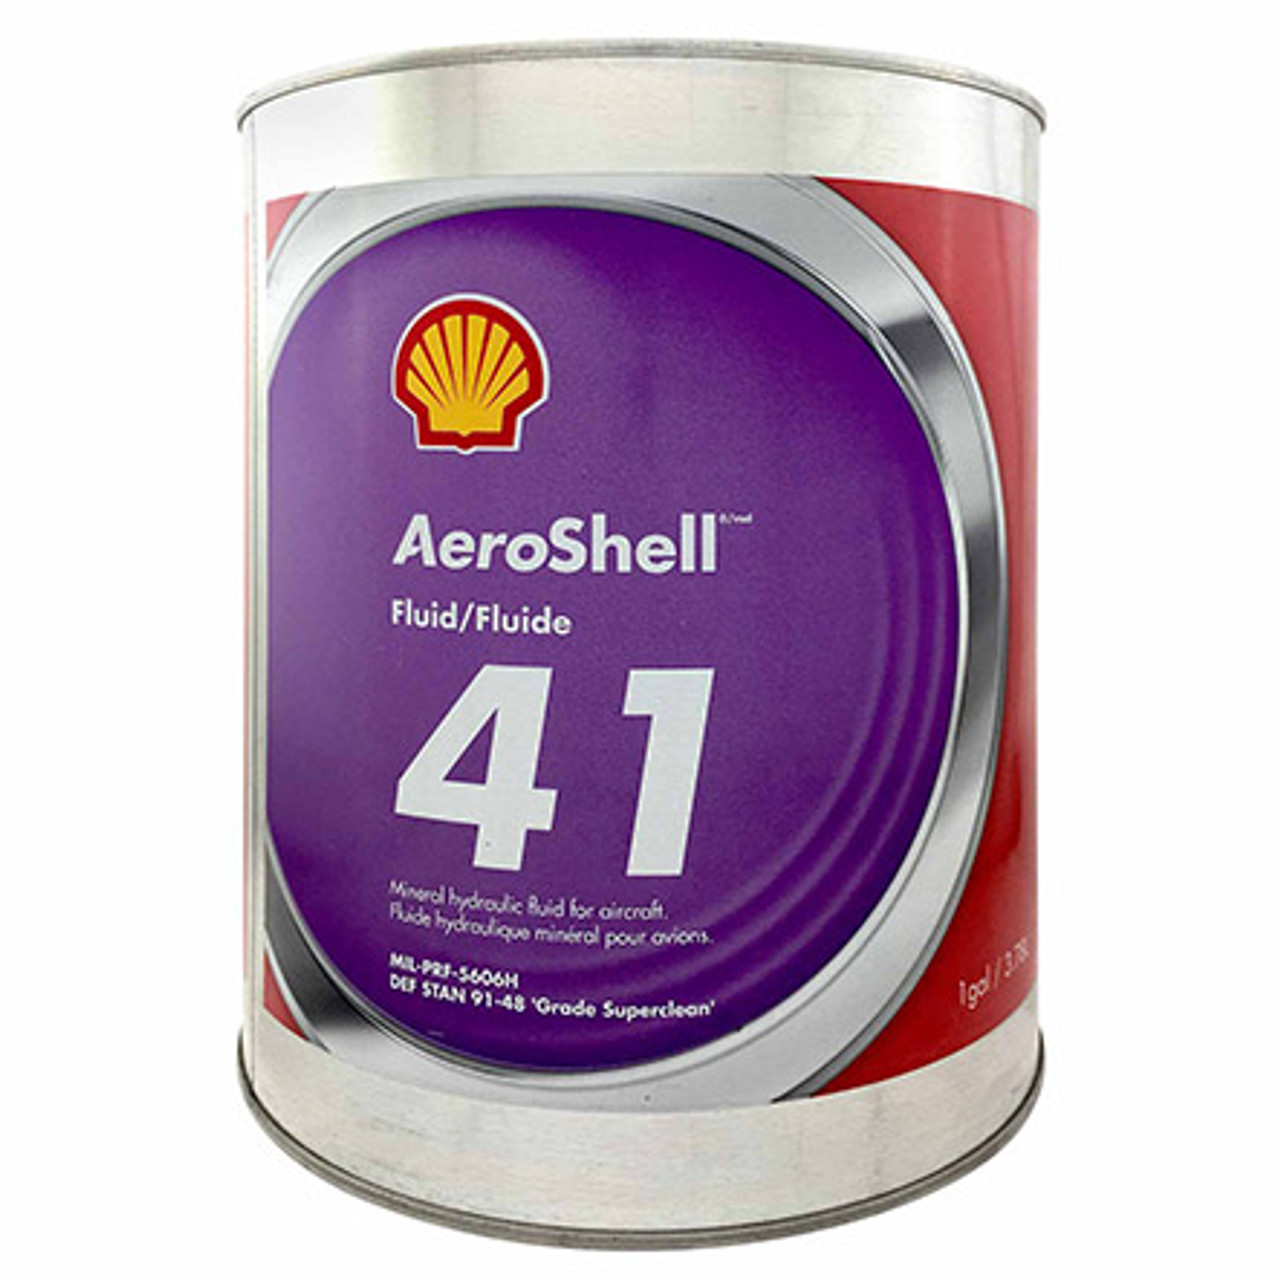 Aeroshell 41 Hydraulic Fluid - 1 Gallon